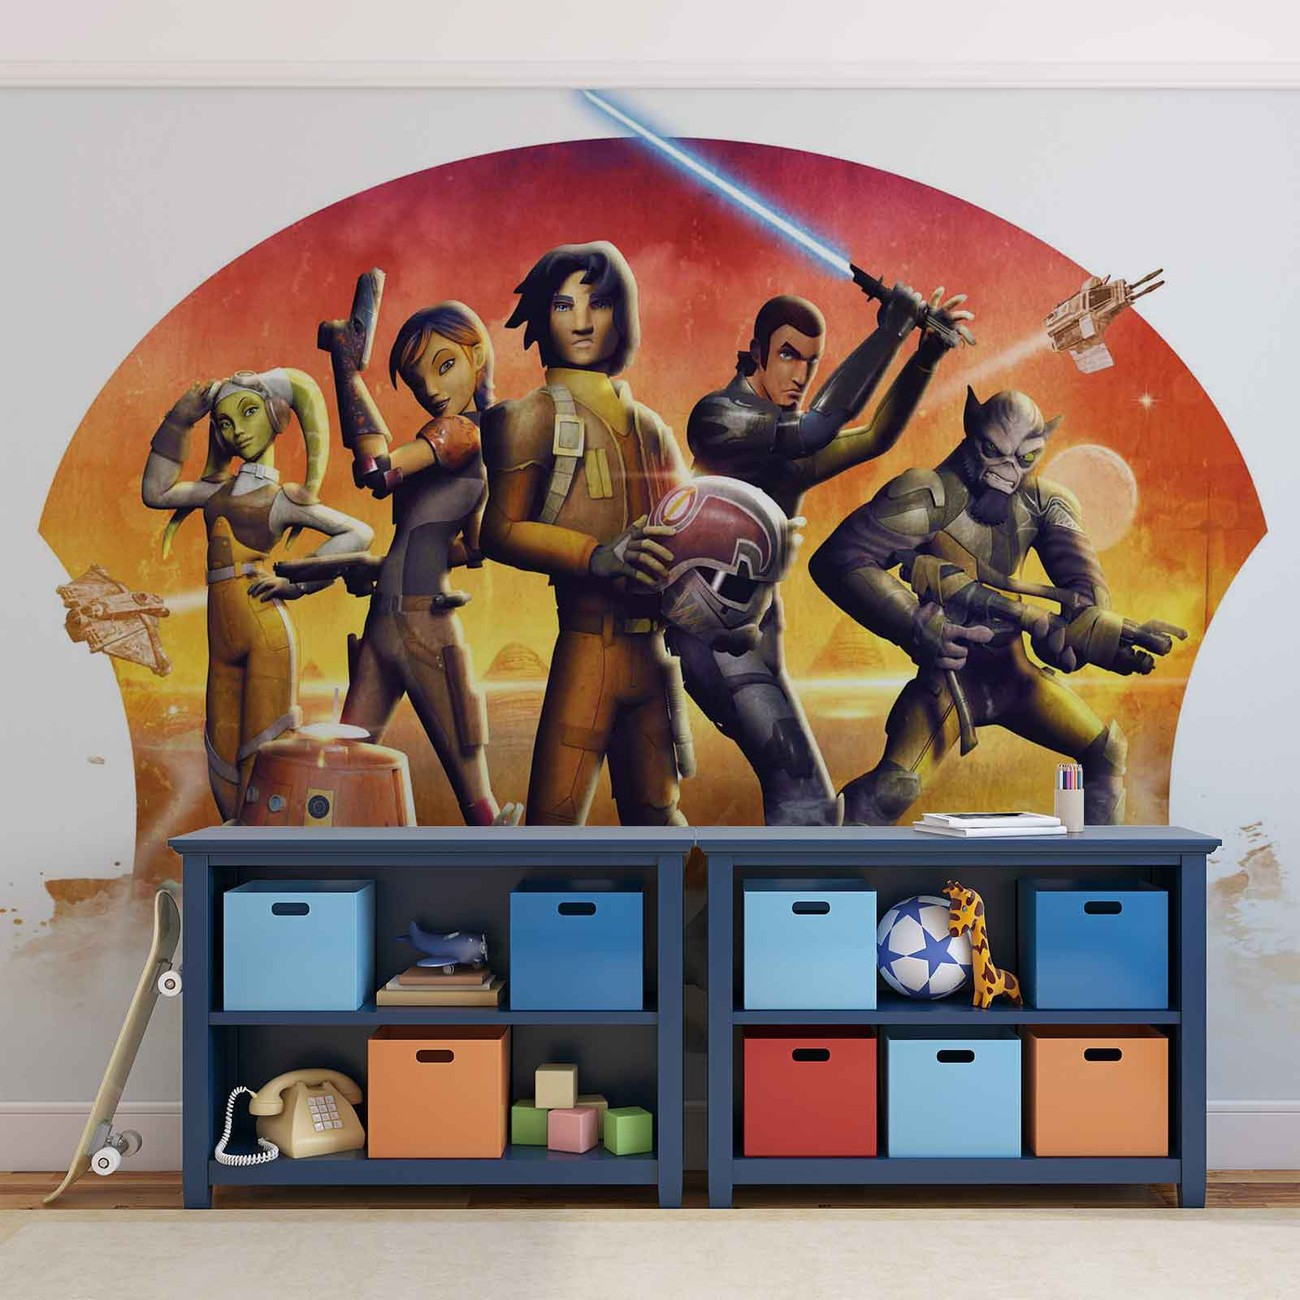 Star wars rebels wall paper mural buy at europosters for Mural star wars